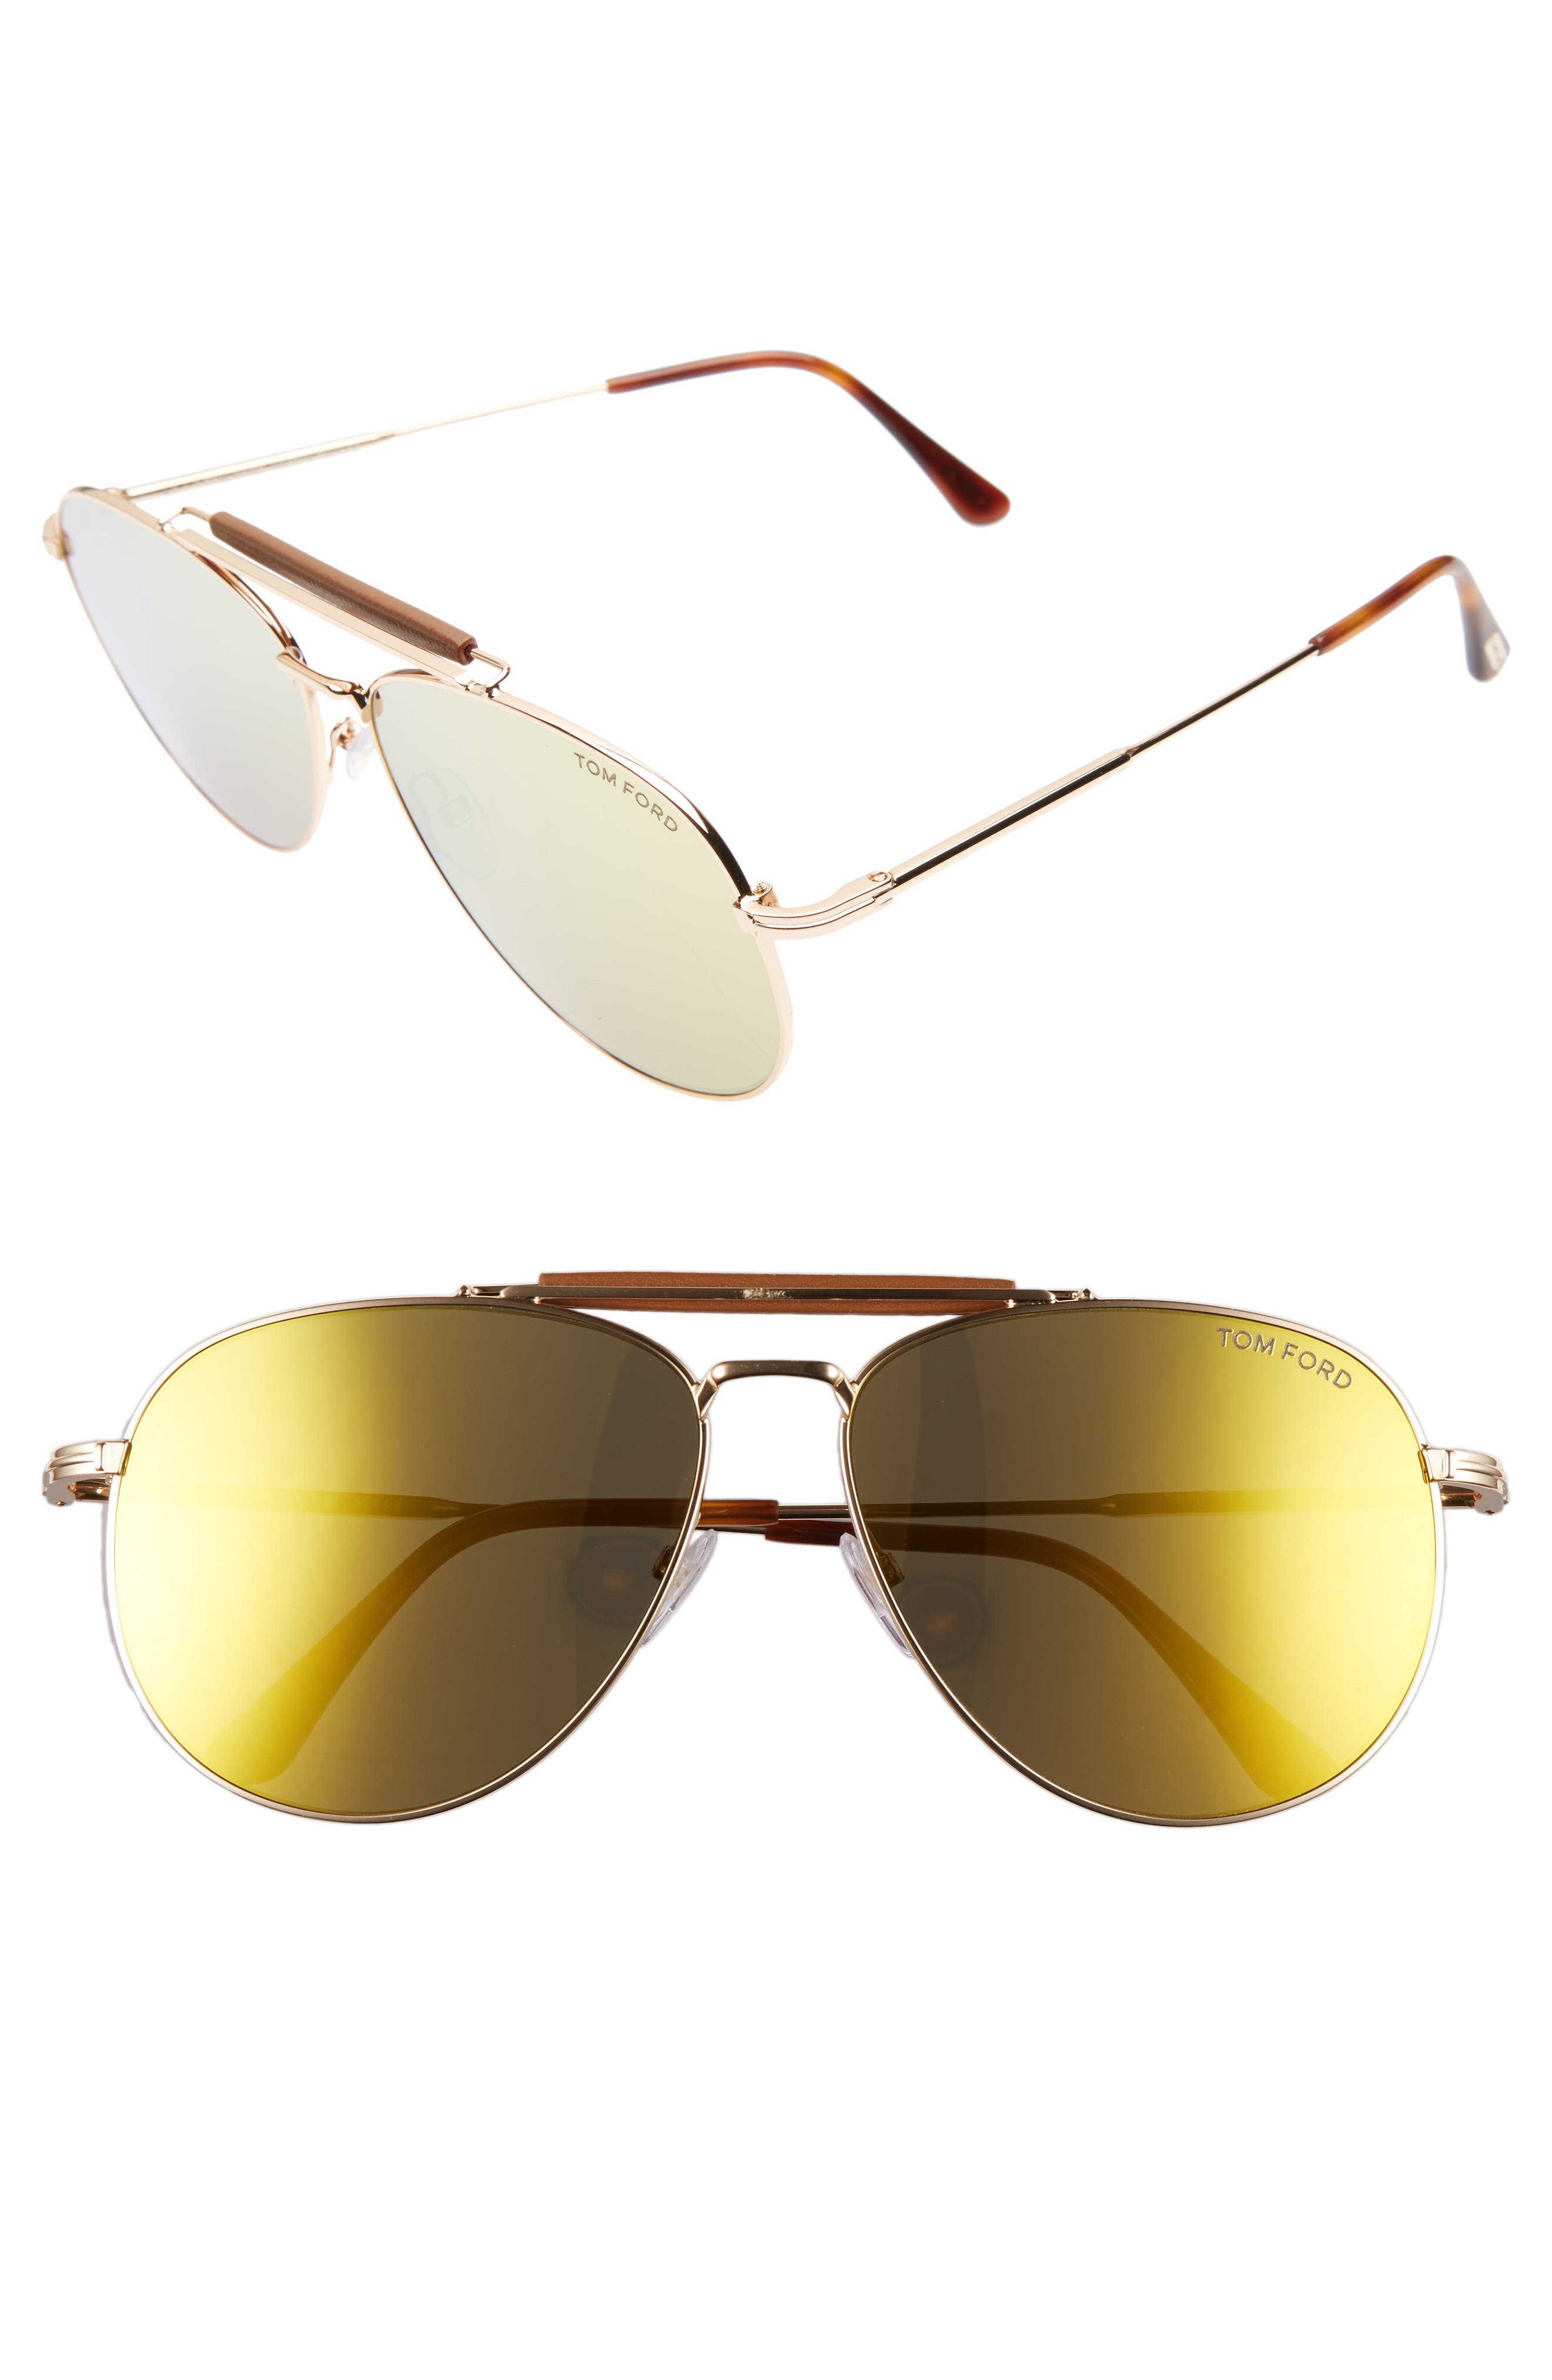 SEAN 60MM AVIATOR SUNGLASSES - ROSE GOLD/ BROWN/ GOLD MIRROR